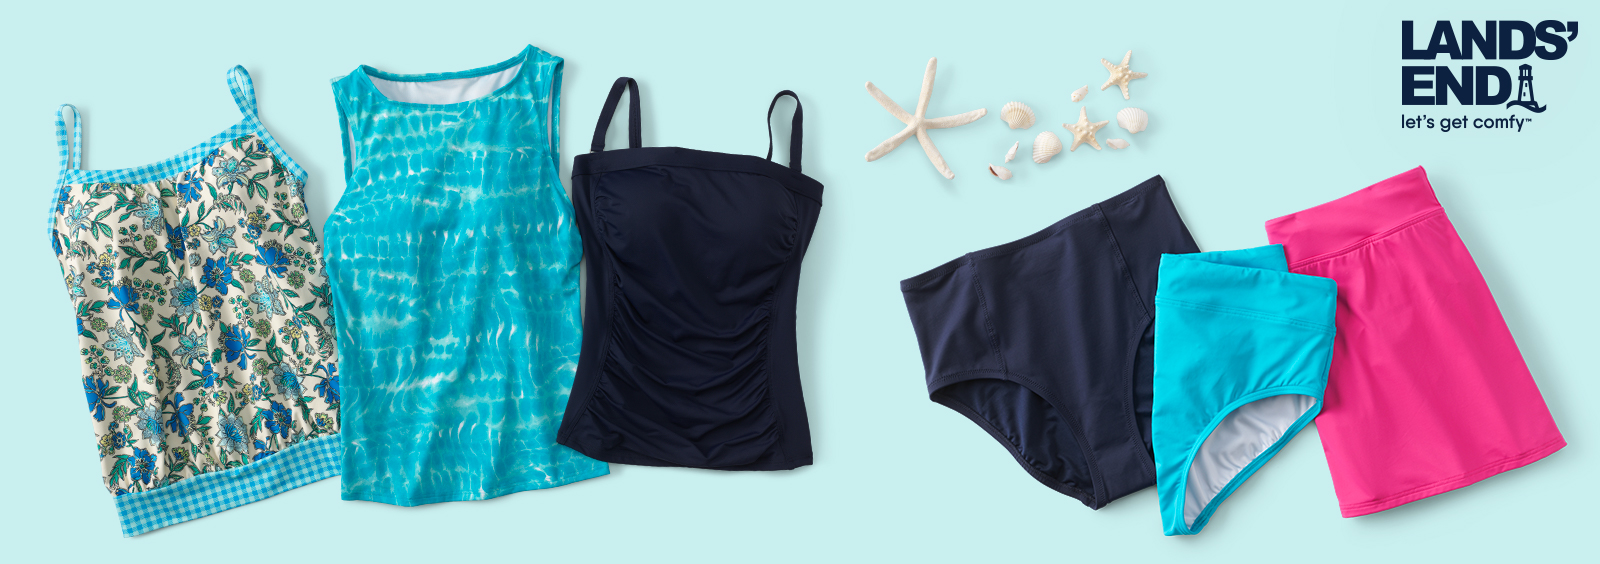 Best Maternity Bathing Suits to Wear in 2021